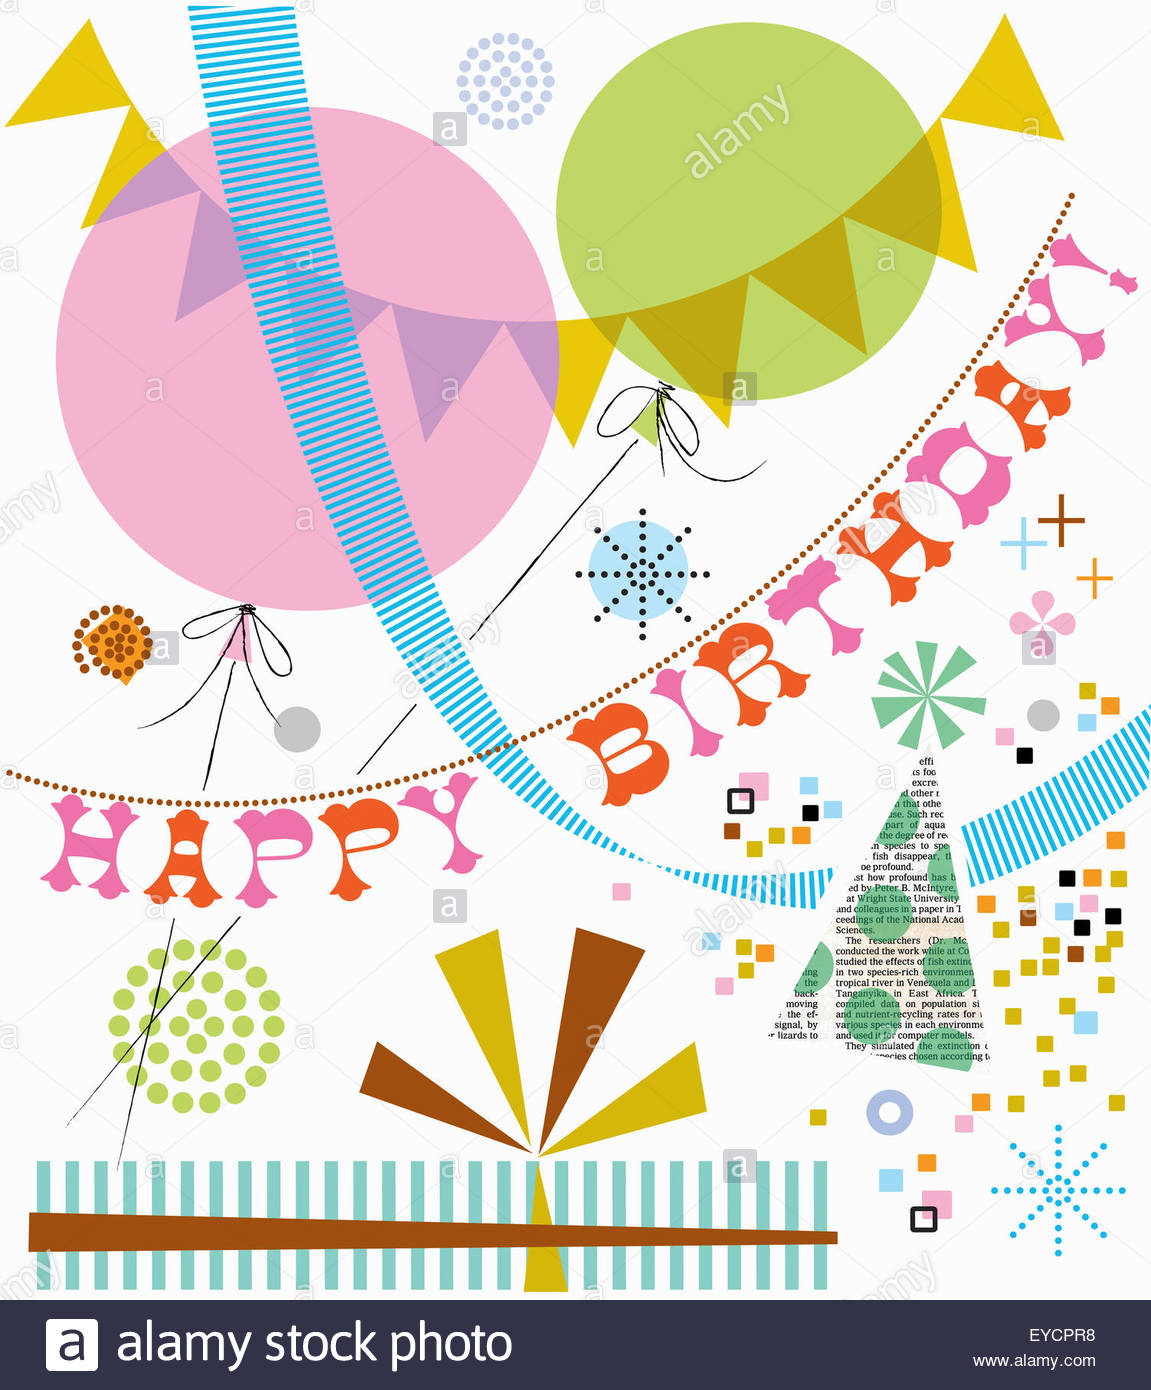 Happy Birthday celebration banner and bunting - Stock Image